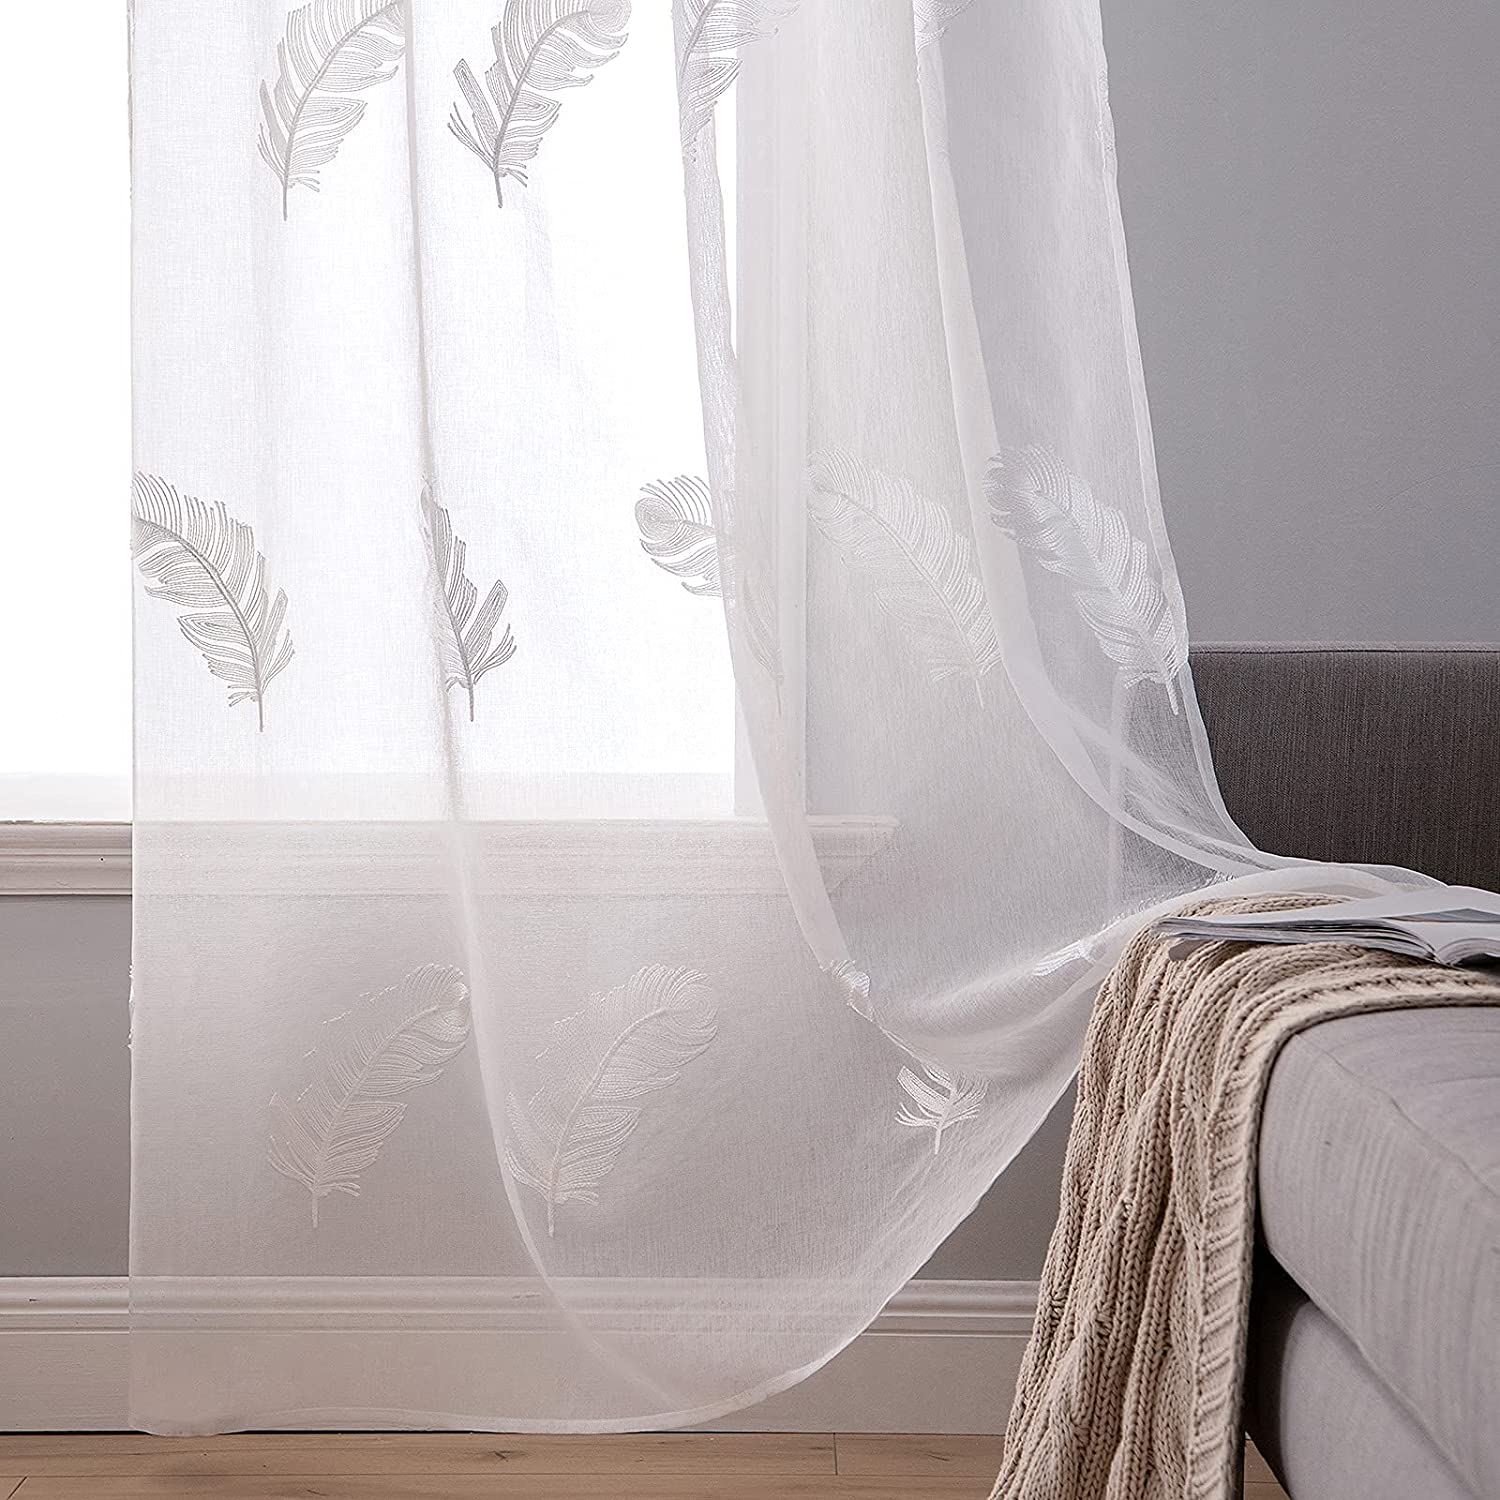 """MIULEE 2 Panels Embroidered Sheer Window Feather Design Grommet Curtains Window Voile Panels/Drape/Treatment for Bedroom Living Room Feather White 55"""" Wx96 L 55""""Wx96""""L White"""